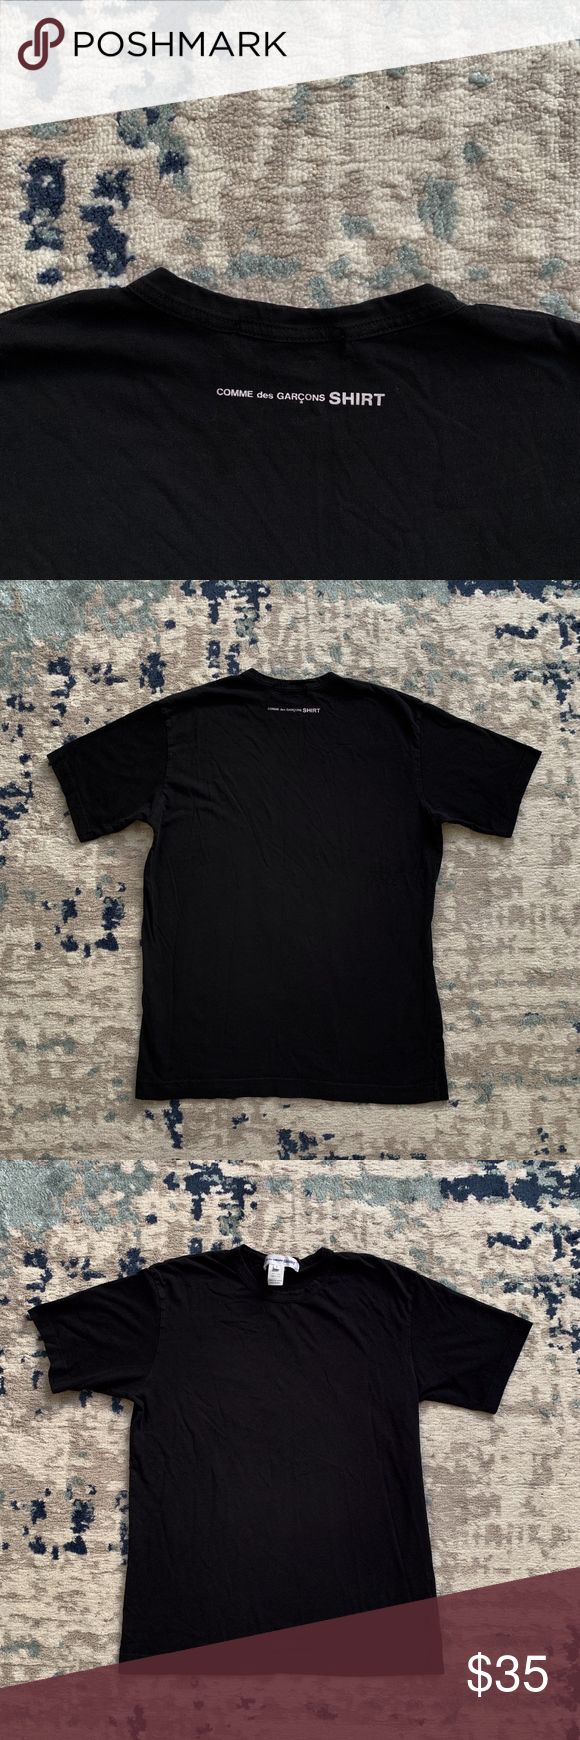 Comme Des Garcons Shirt T Shirt Black Back Logo L 100 Authentic Great Pre Owned Condition Washed Out Color Black Shirt Back To Black Comme Des Garcons Shirt